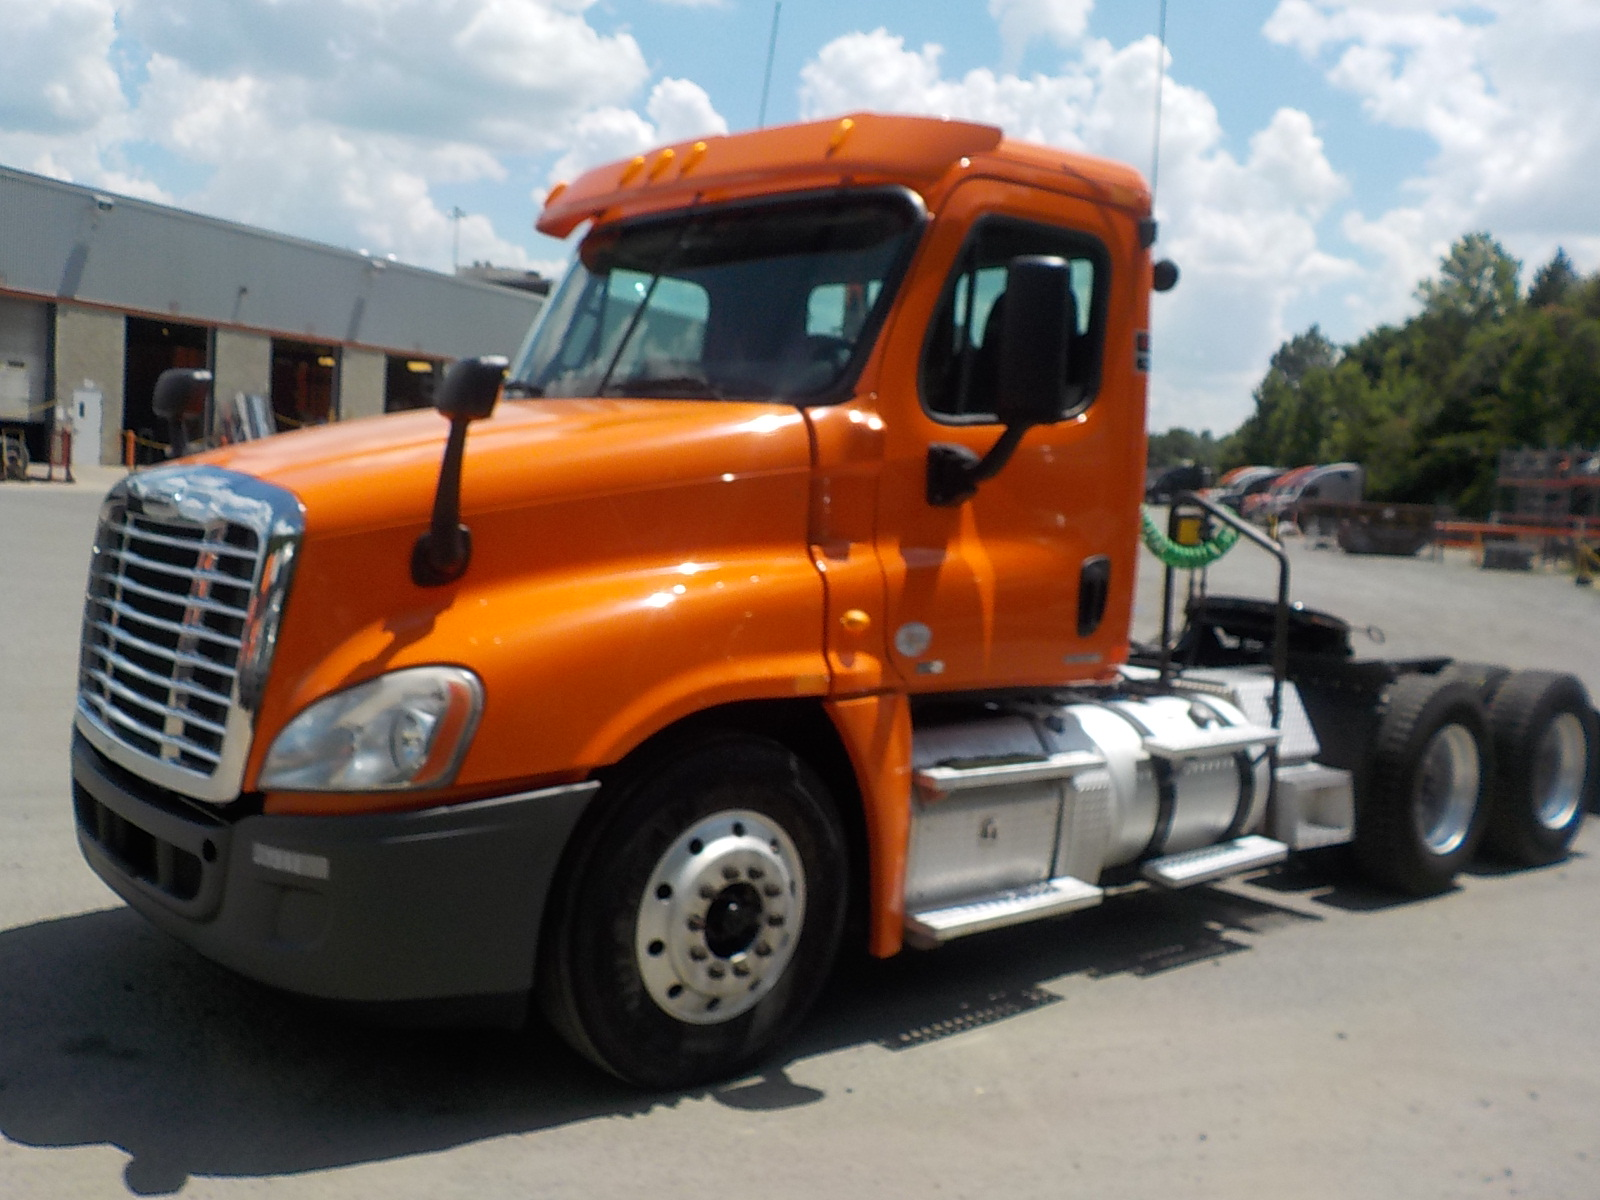 USED 2011 FREIGHTLINER CASCADIA DAYCAB TRUCK #126337